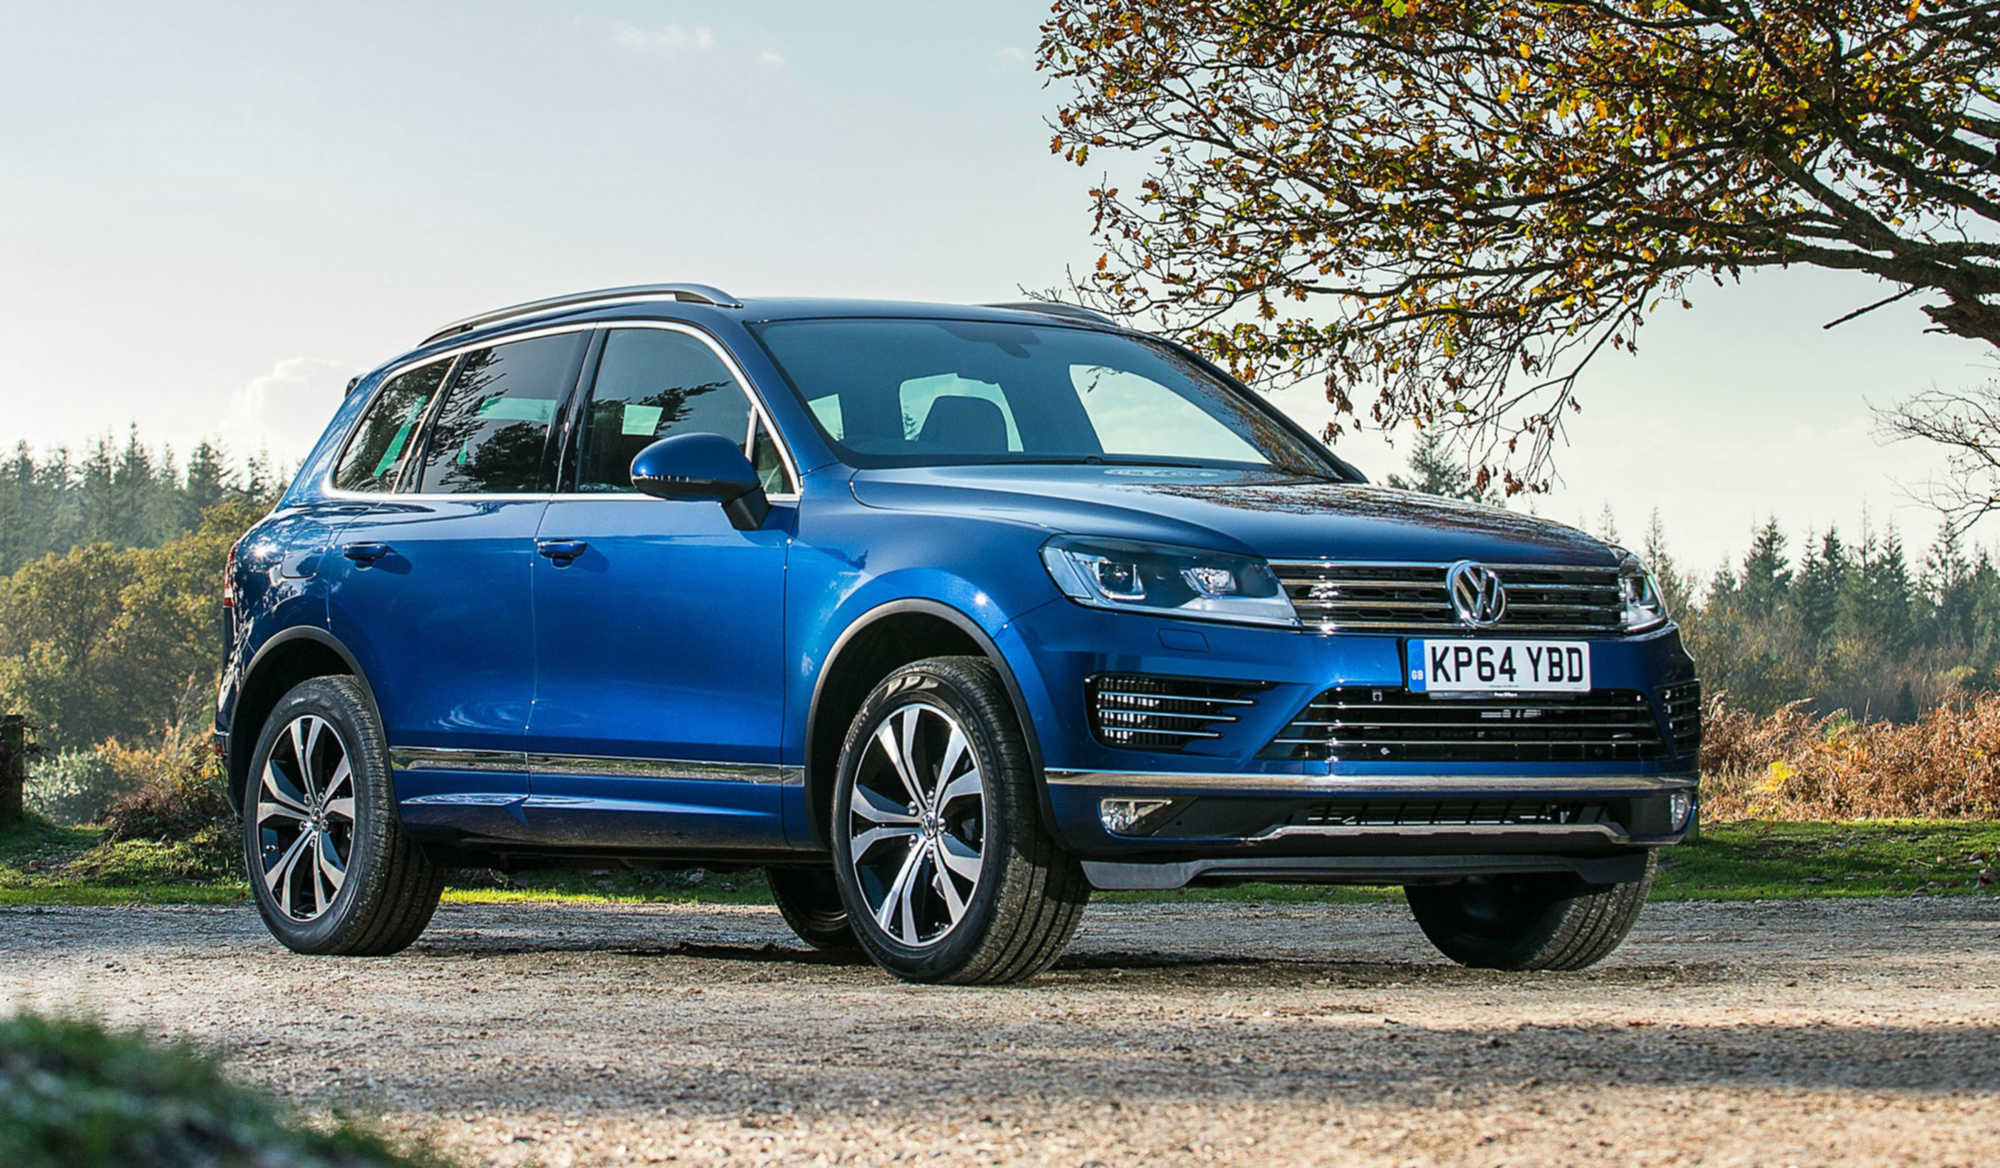 Volkswagen Touareg 4x4 Review Car Keys